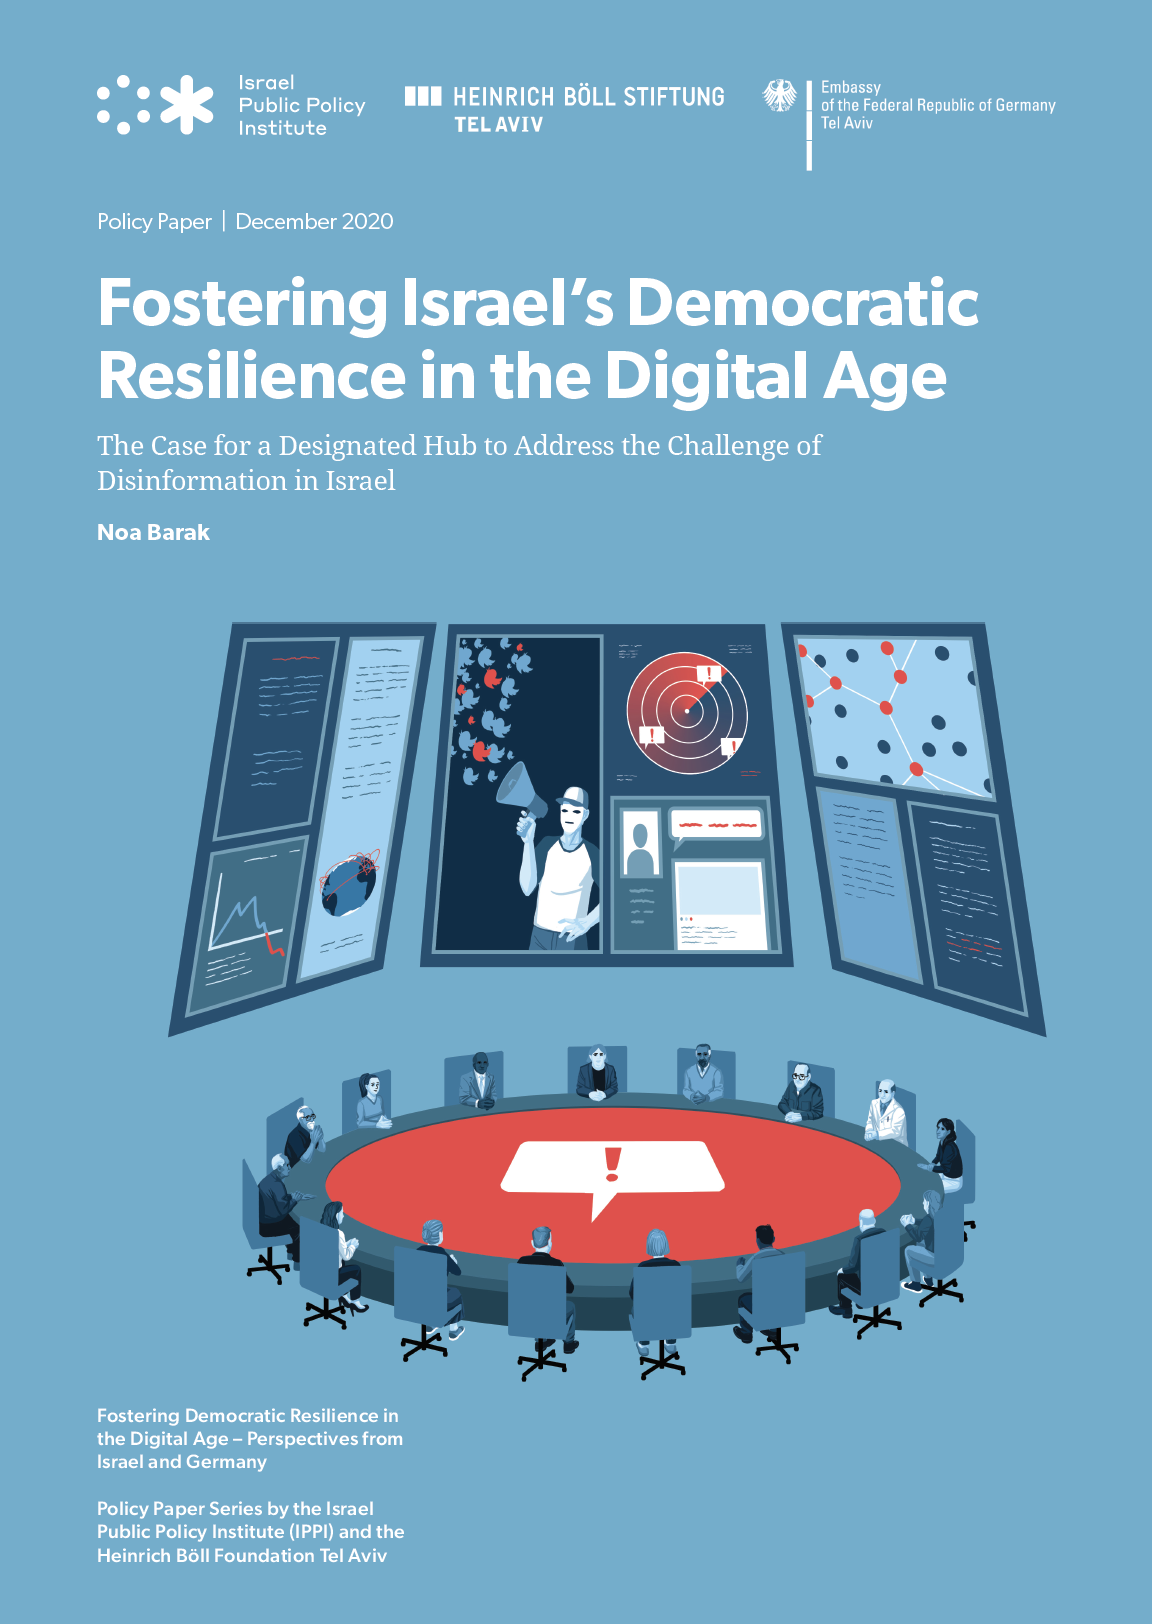 Blue cover page with roundtable discussion among experts deciding how to combat disinformation